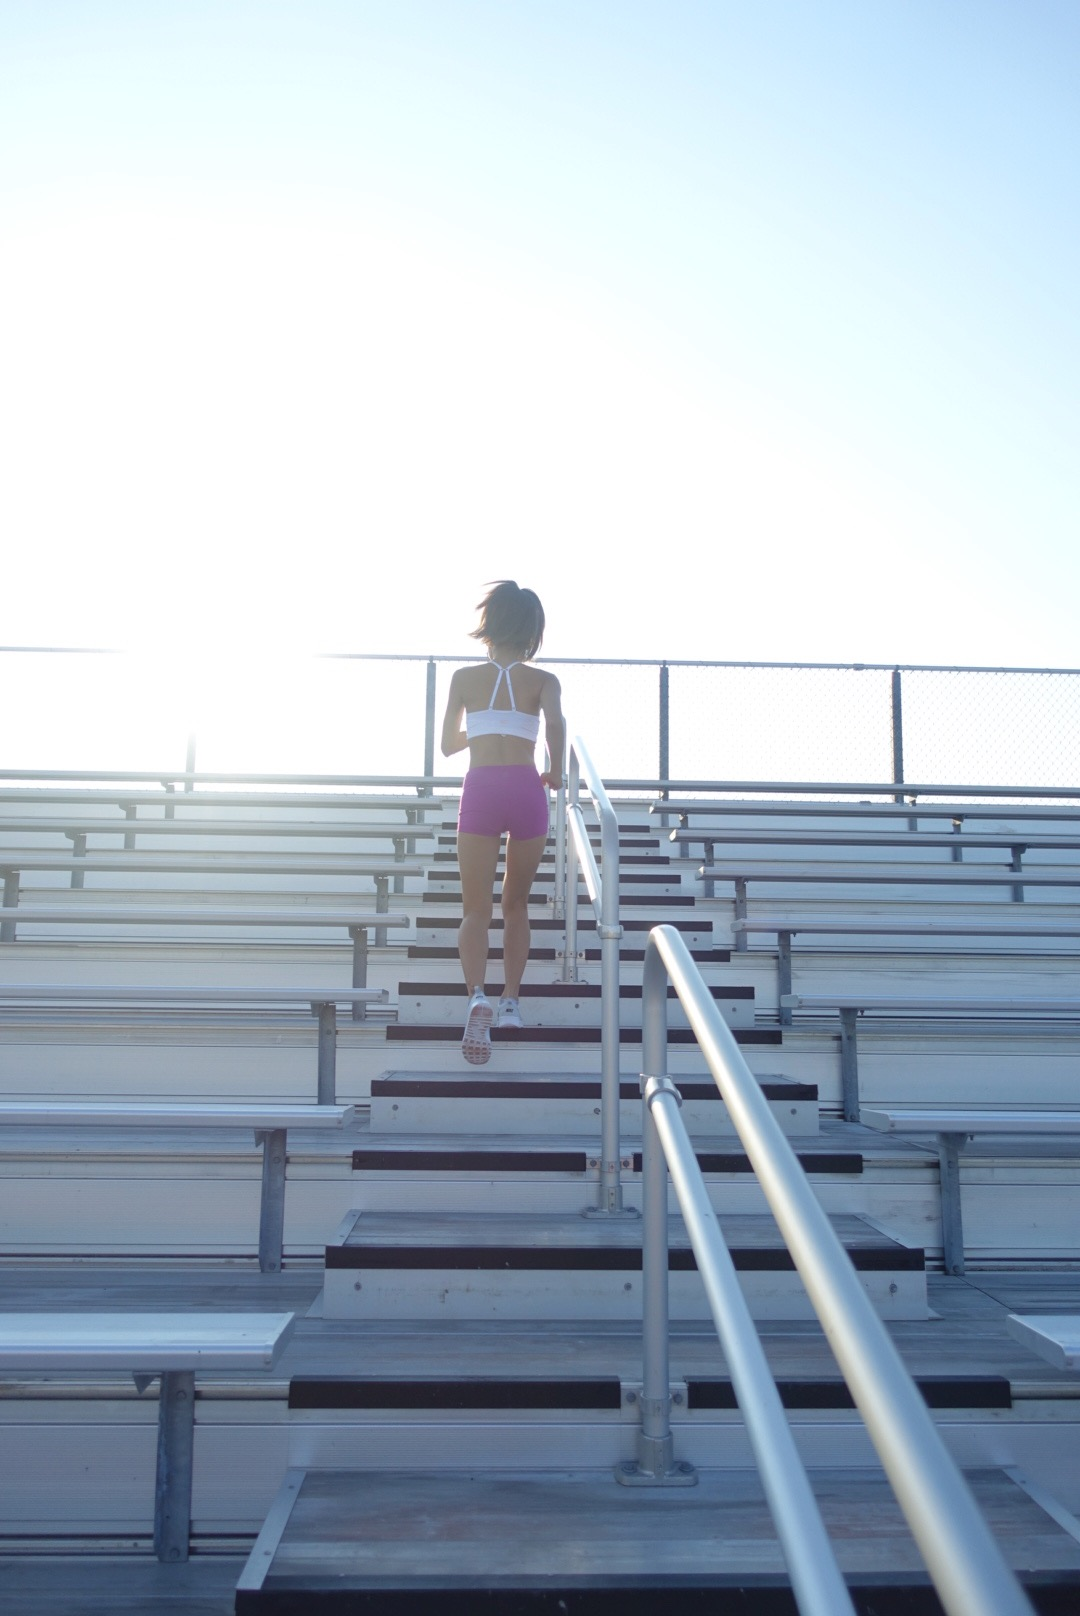 bleacher workouts, family exercises, full body exercises, full body workouts, step ups, high knees, incline push-ups, tricep dips, side lunges, jump squats, bleacher jumps, bleacher sprints, plyometrics, outdoor workout, fit mom, fitness after baby, fitness family